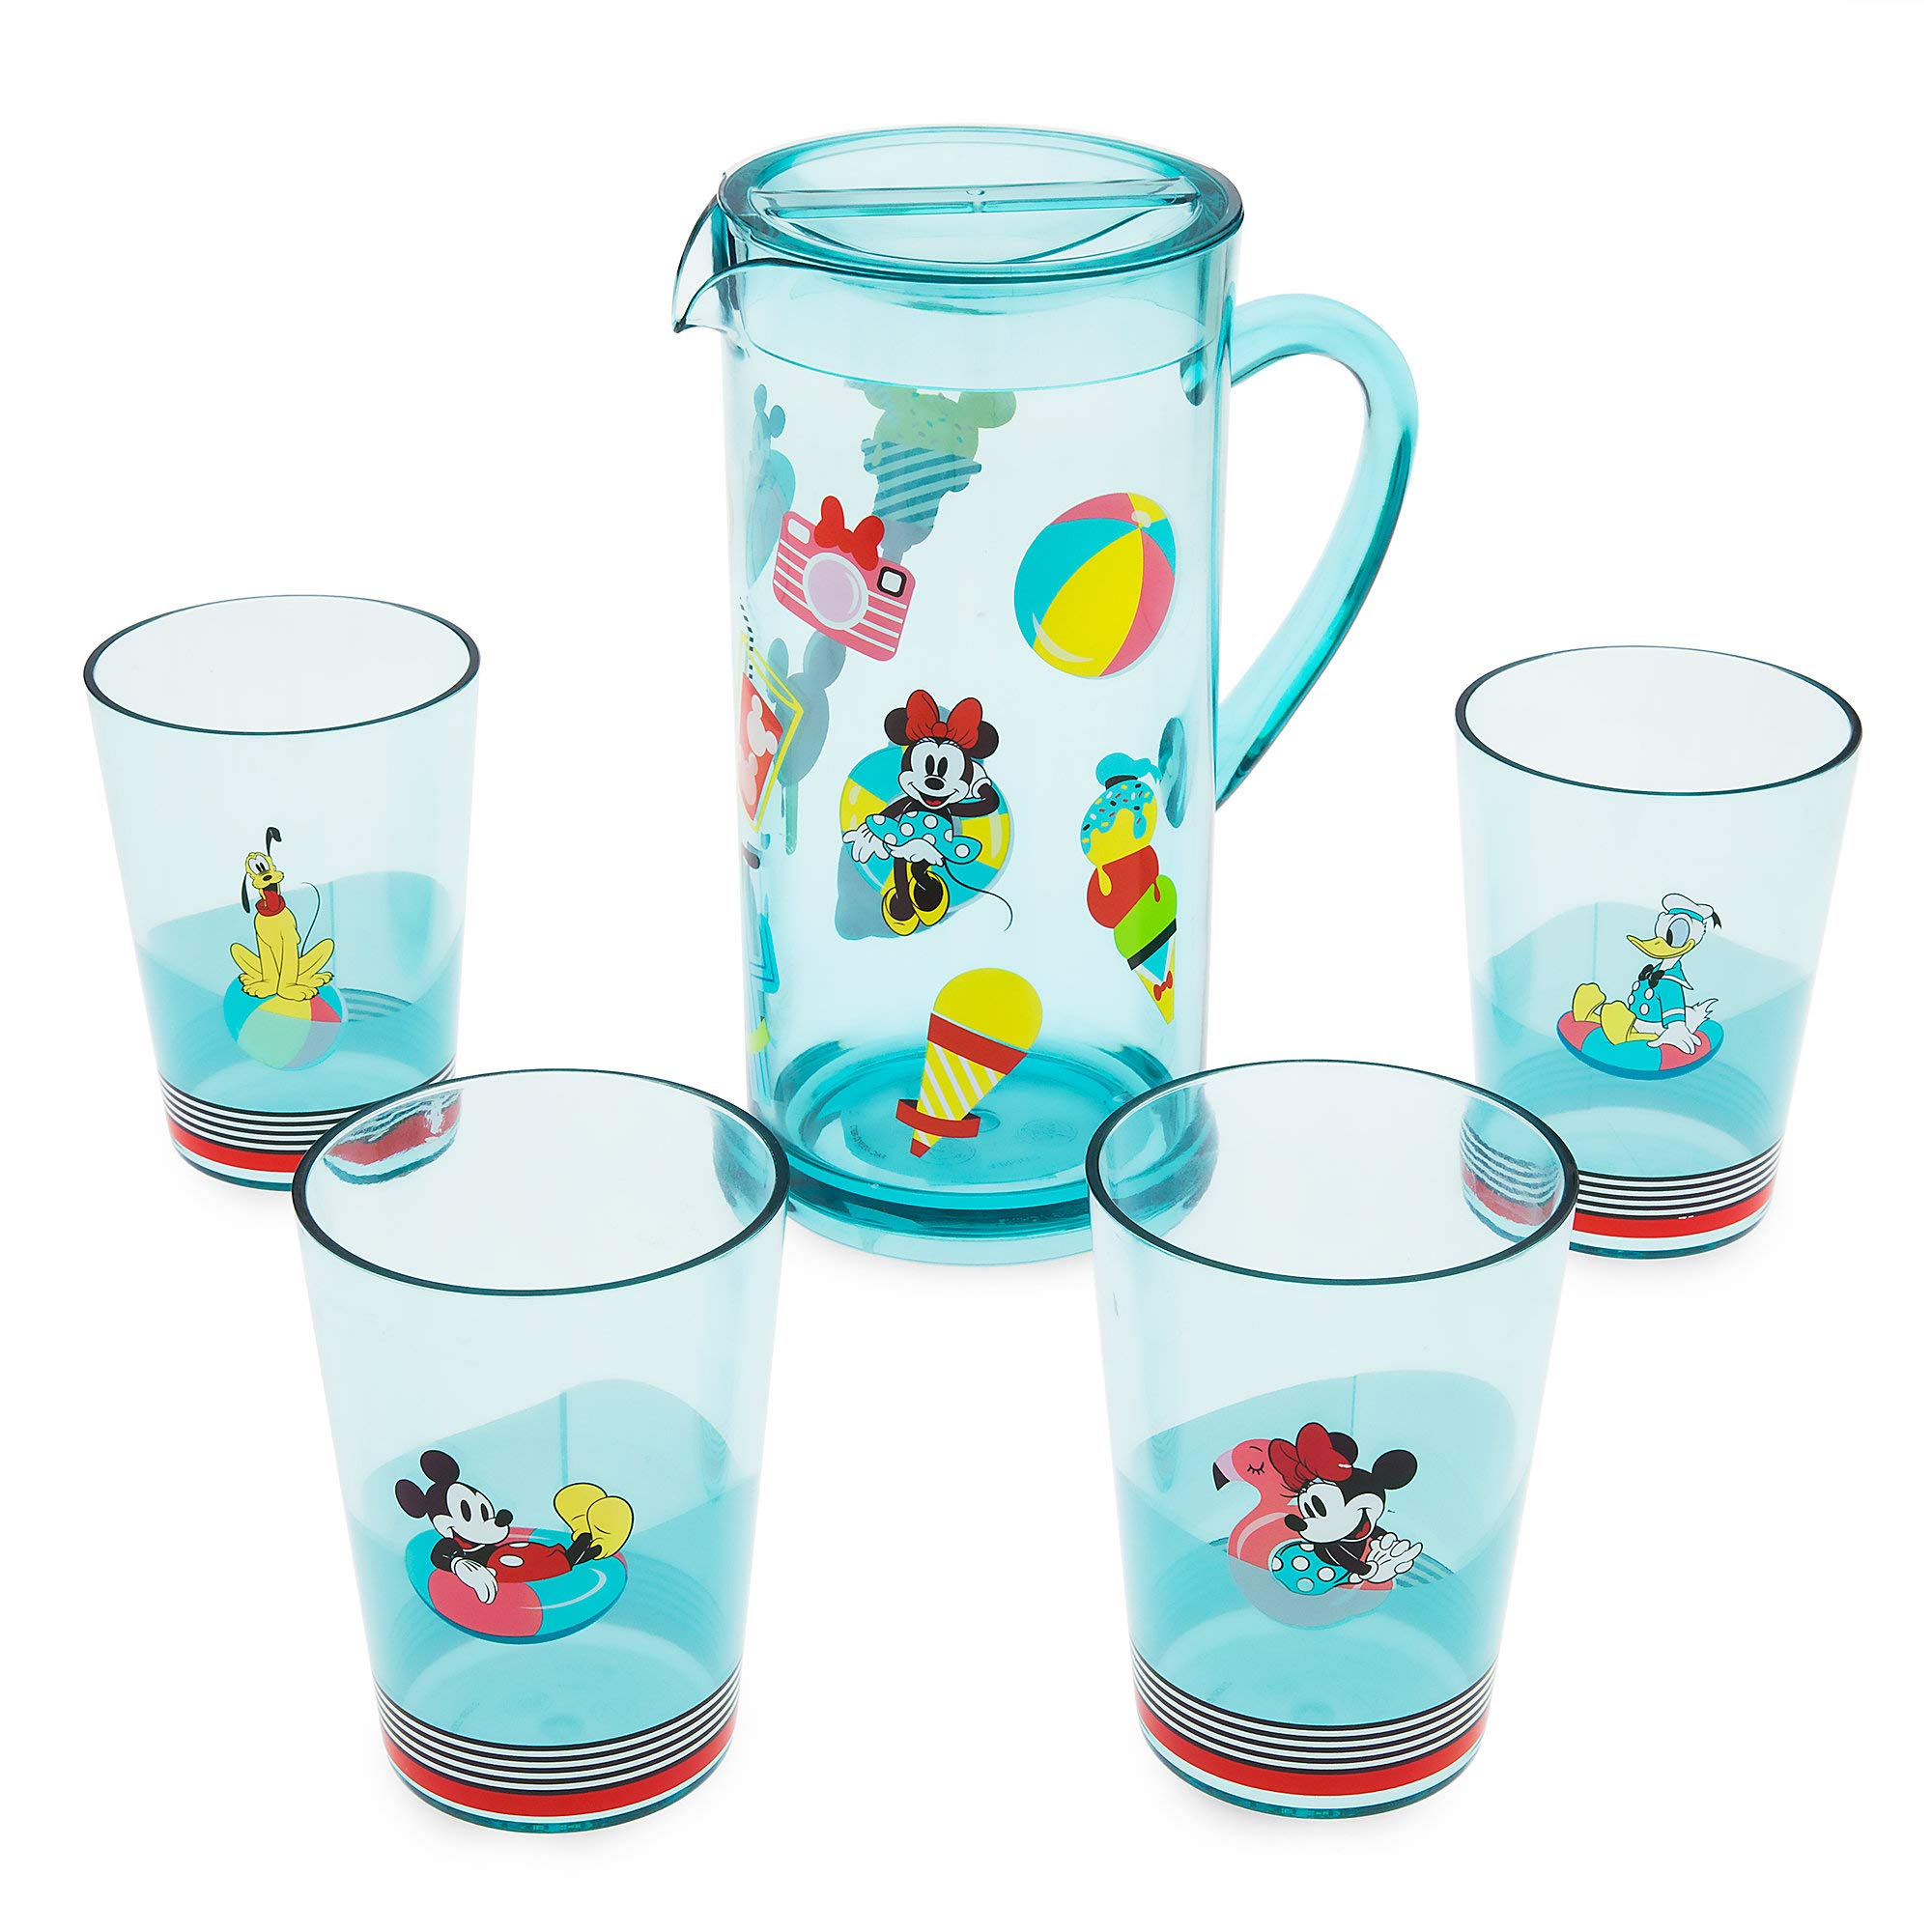 Disney Mickey Mouse and Friends Pitcher Set - Disney Eats